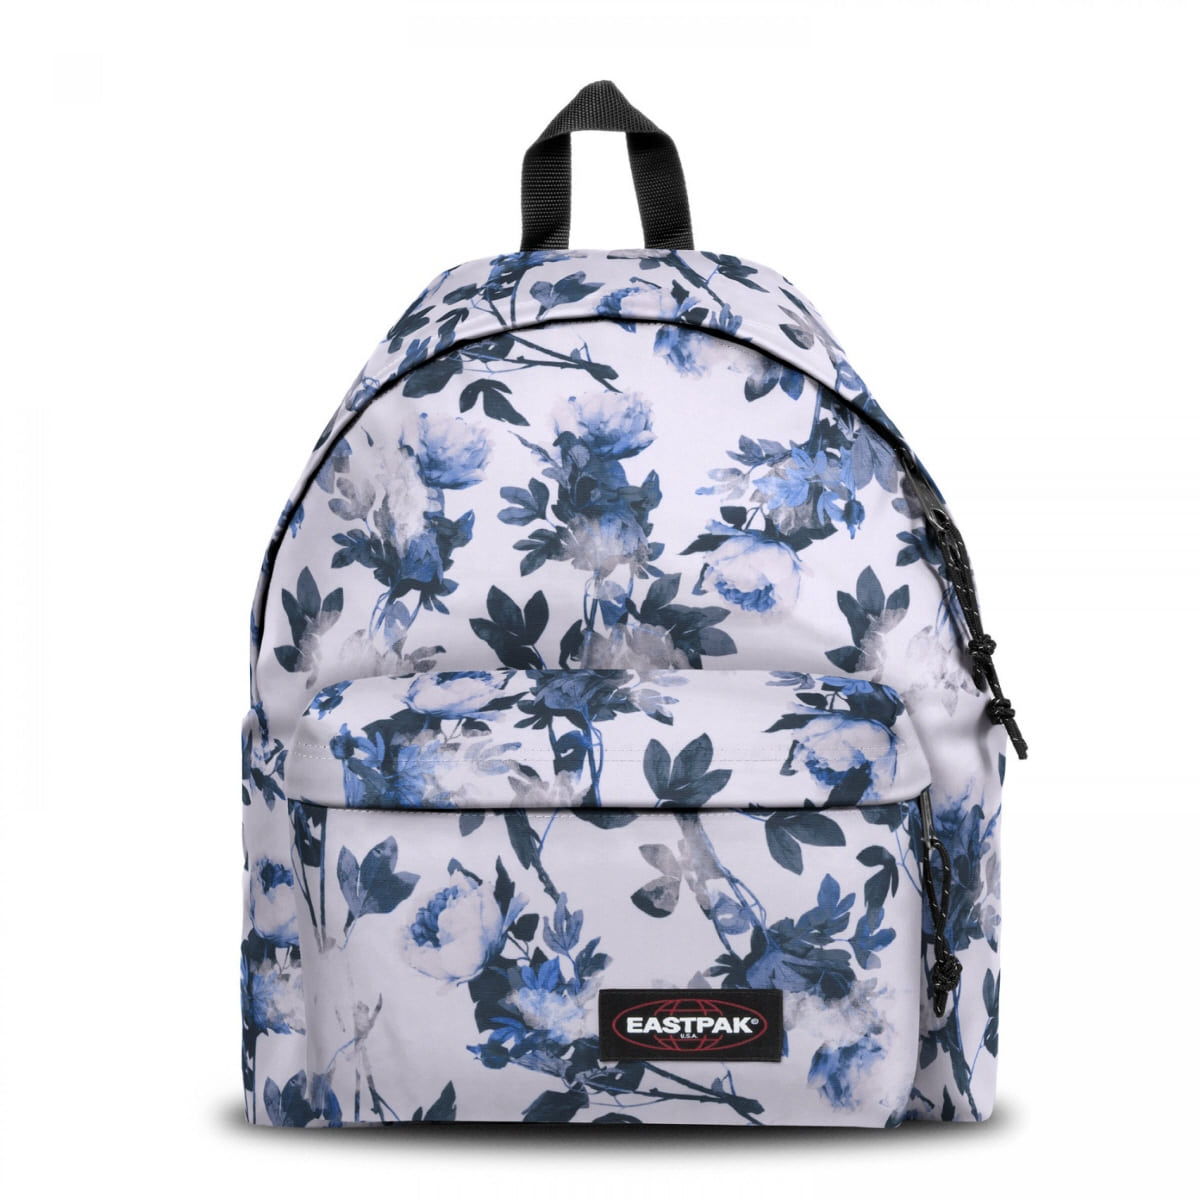 [EASTPAK] AUTHENTIC 백팩 패디드 파커 EJCBA12 77Y